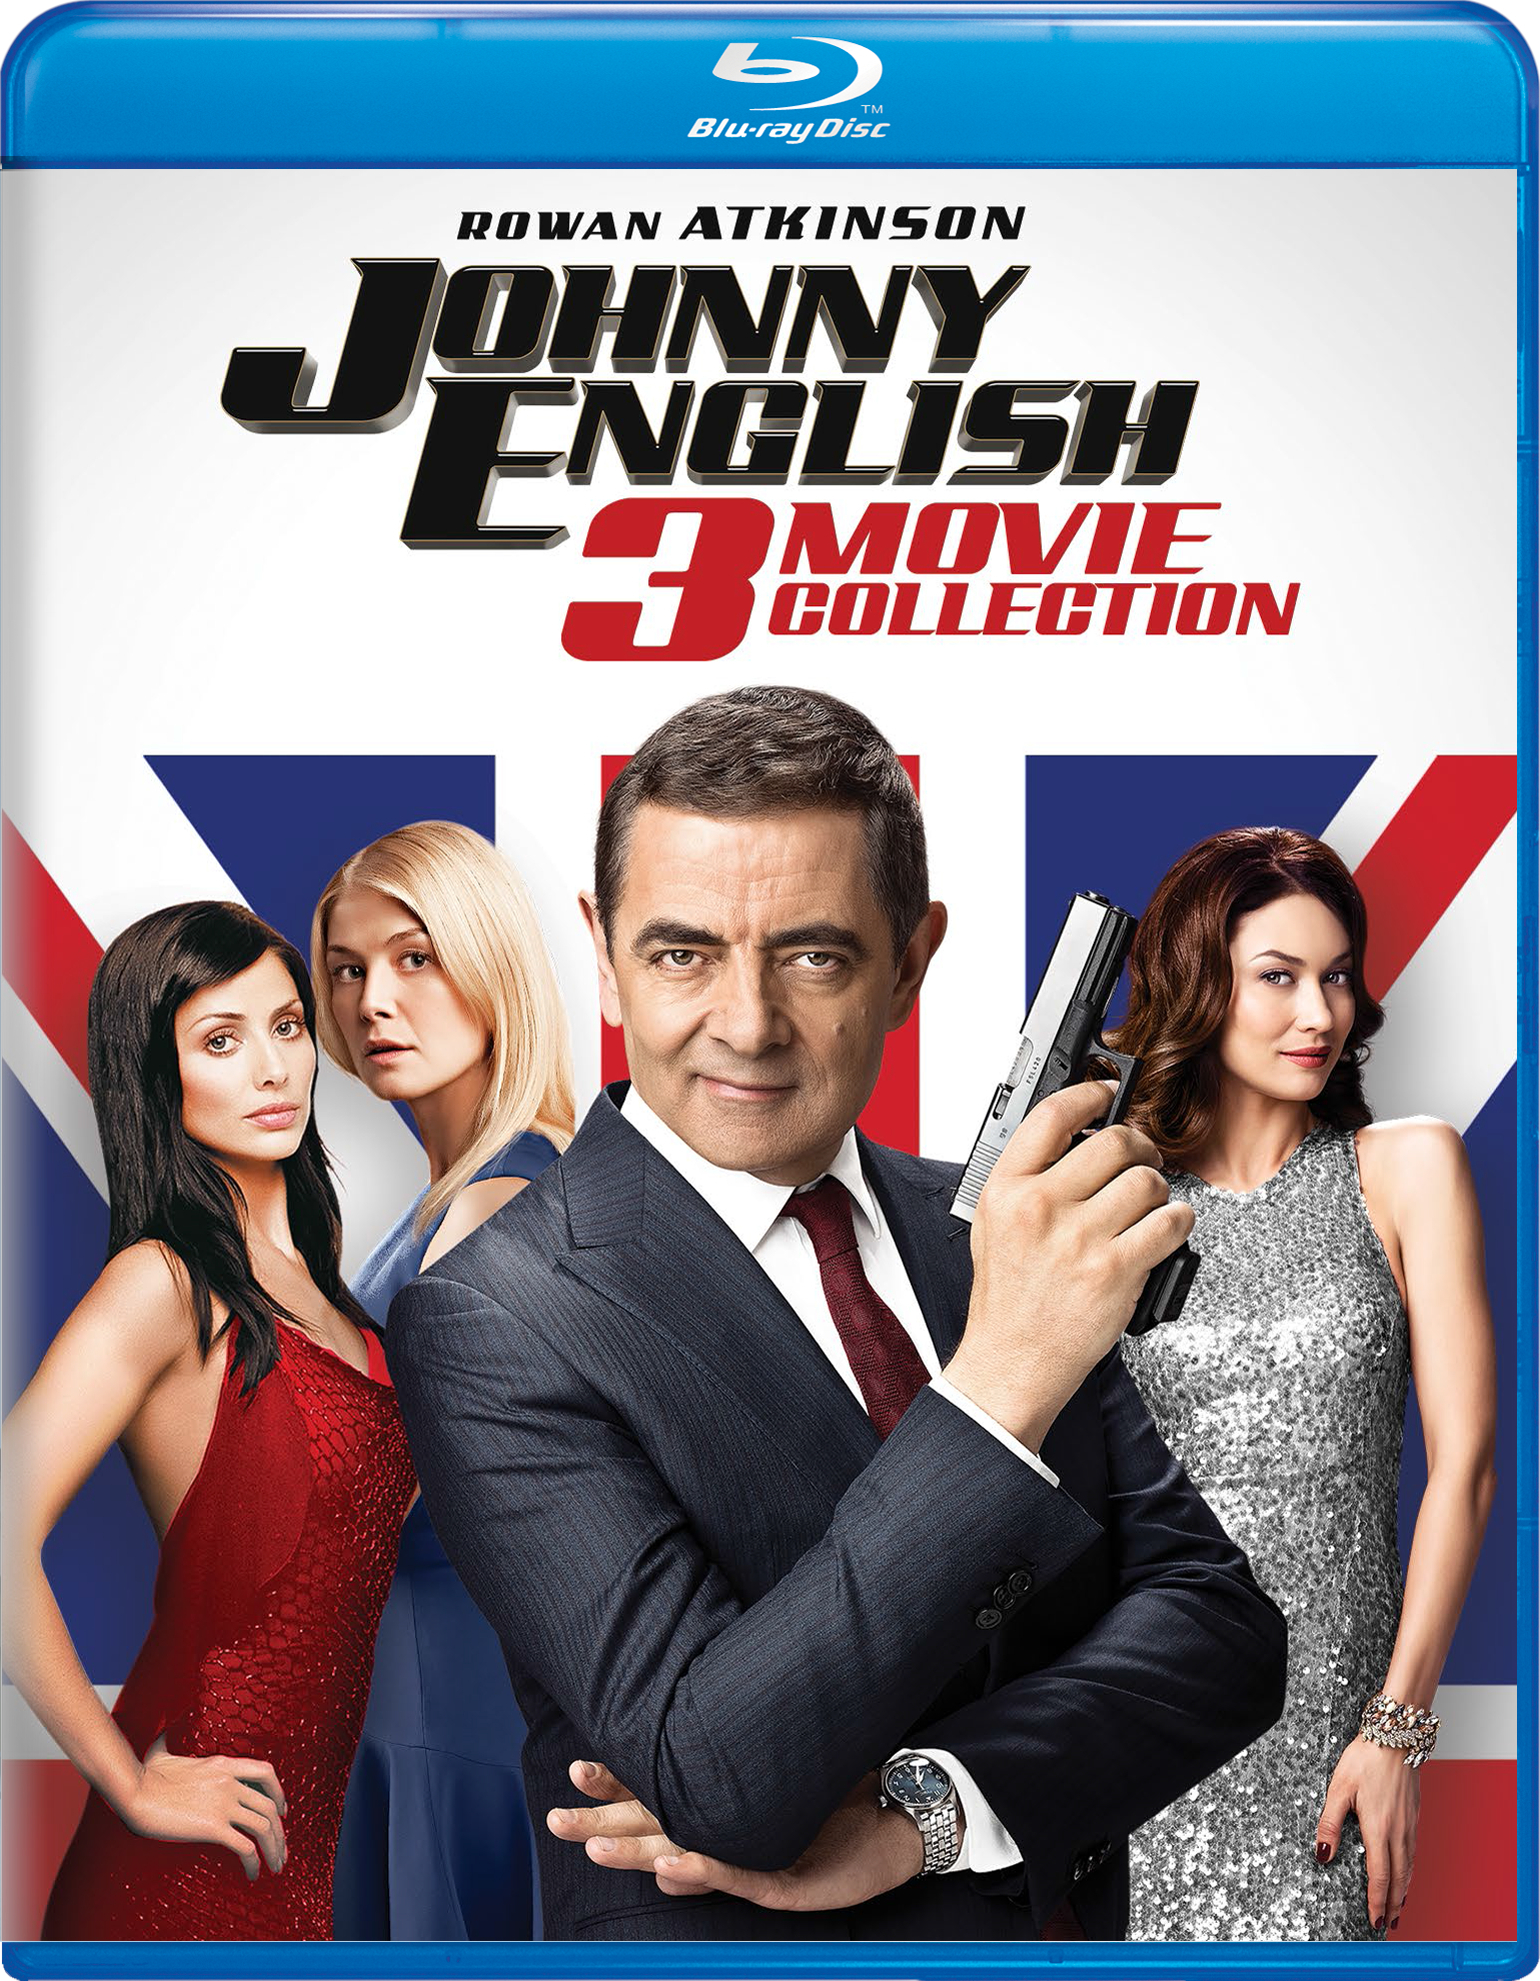 Johnny English: 3-Movie Collection (Blu-ray)(Region Free)(Pre-order / Jun 4)